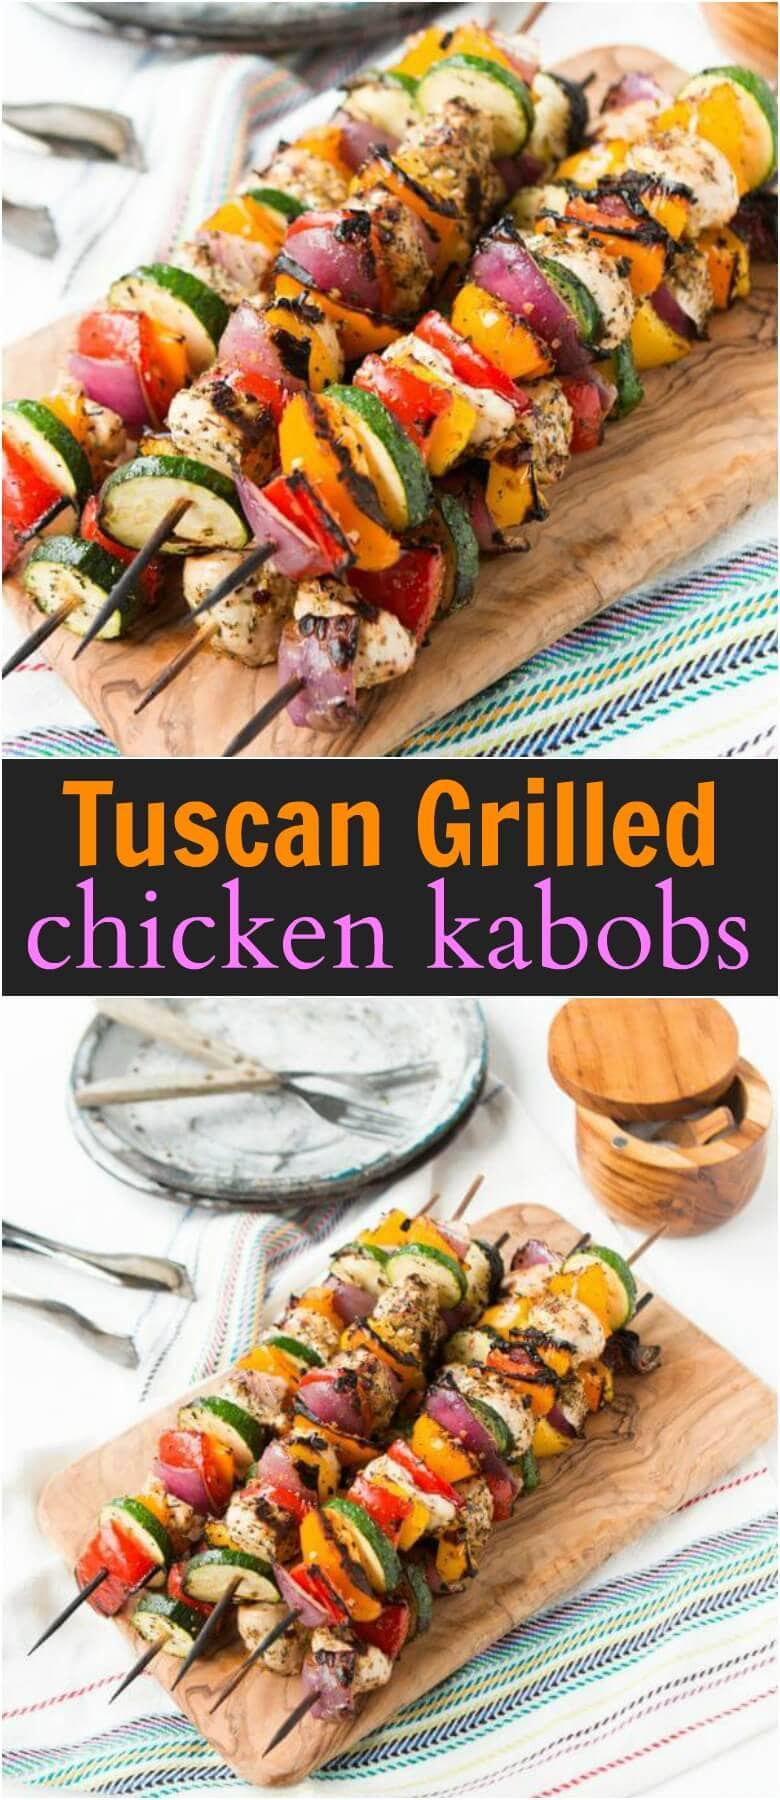 How long do i grill chicken kabobs - These Tuscan Grilled Chicken Kabobs Are So Easy And We Eat Them All Summer Long